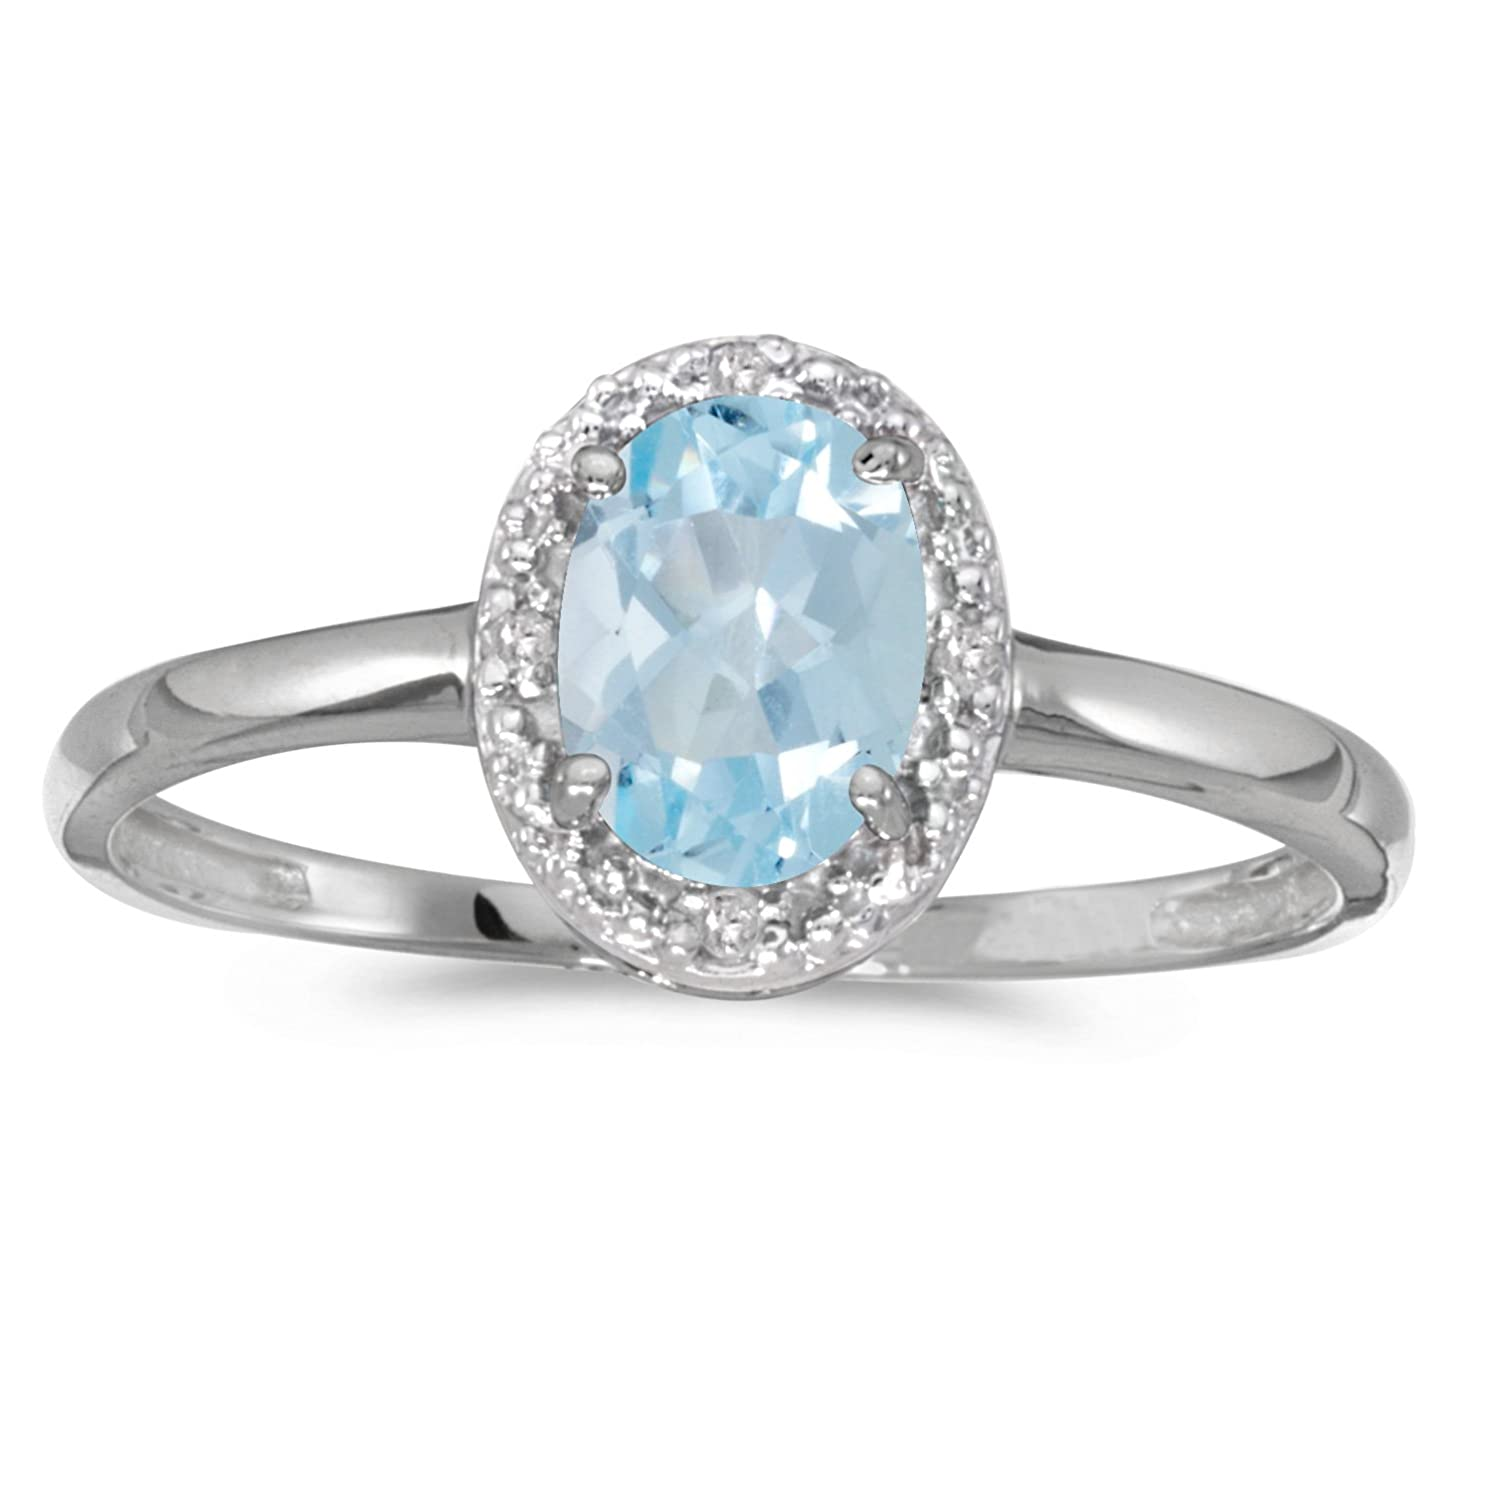 Amazon 10k White Gold Oval Aquamarine And Diamond Ring Jewelry